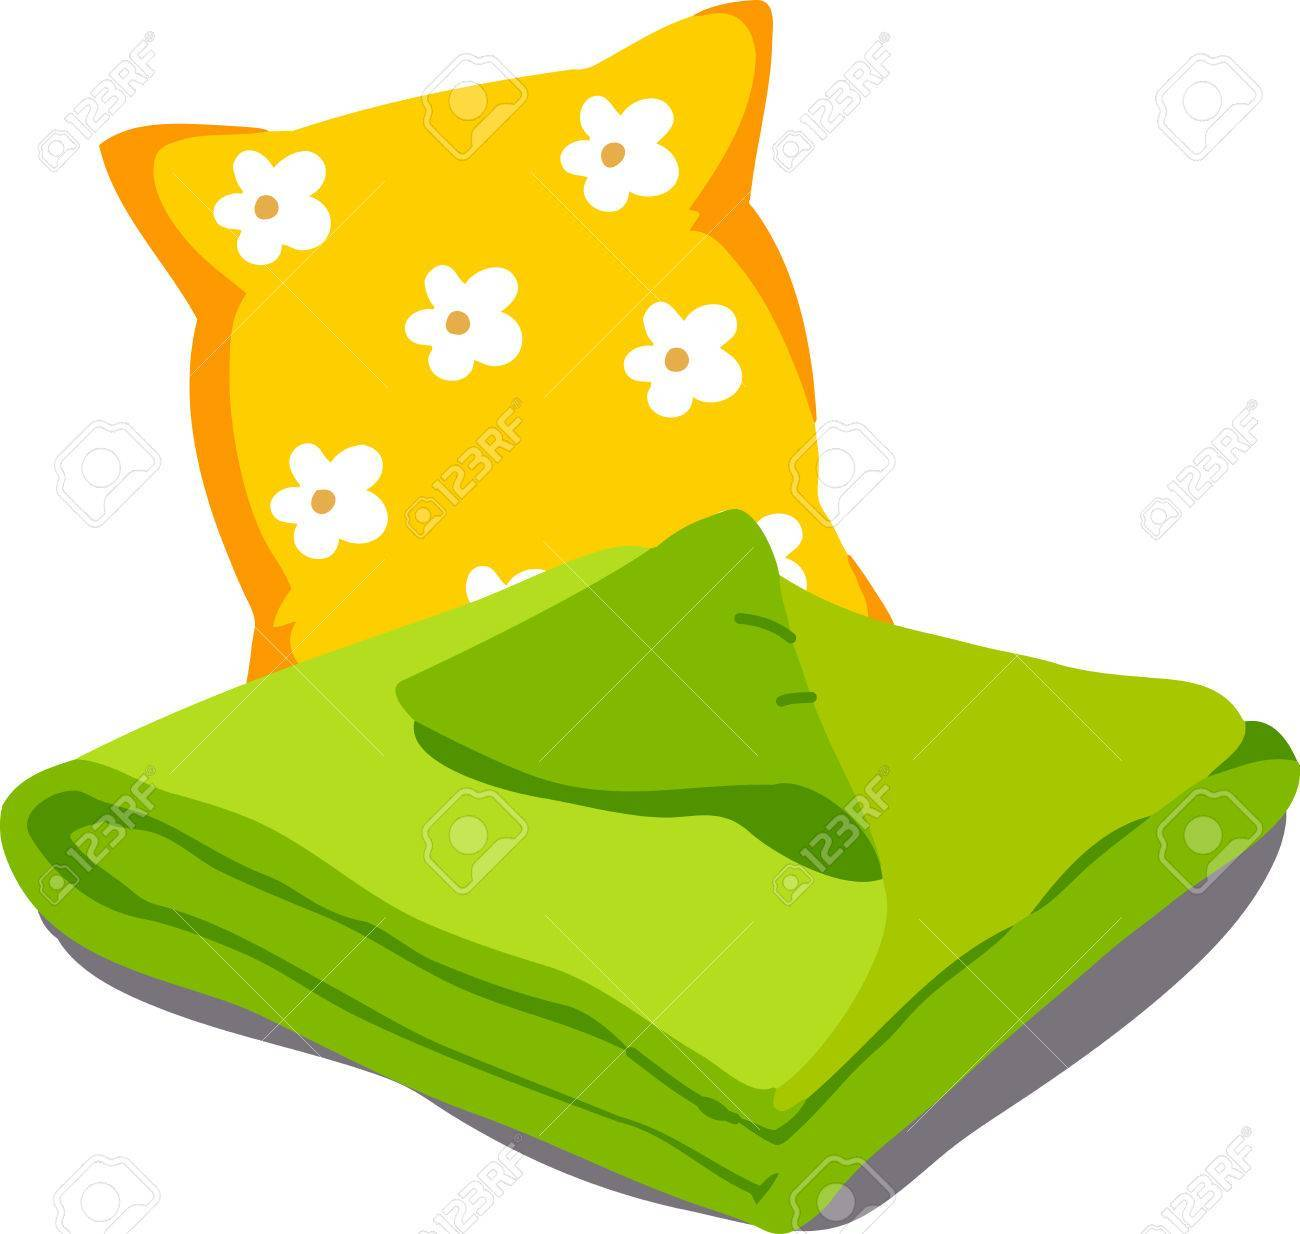 Linen clipart graphic library download Color bed linen » Clipart Portal graphic library download